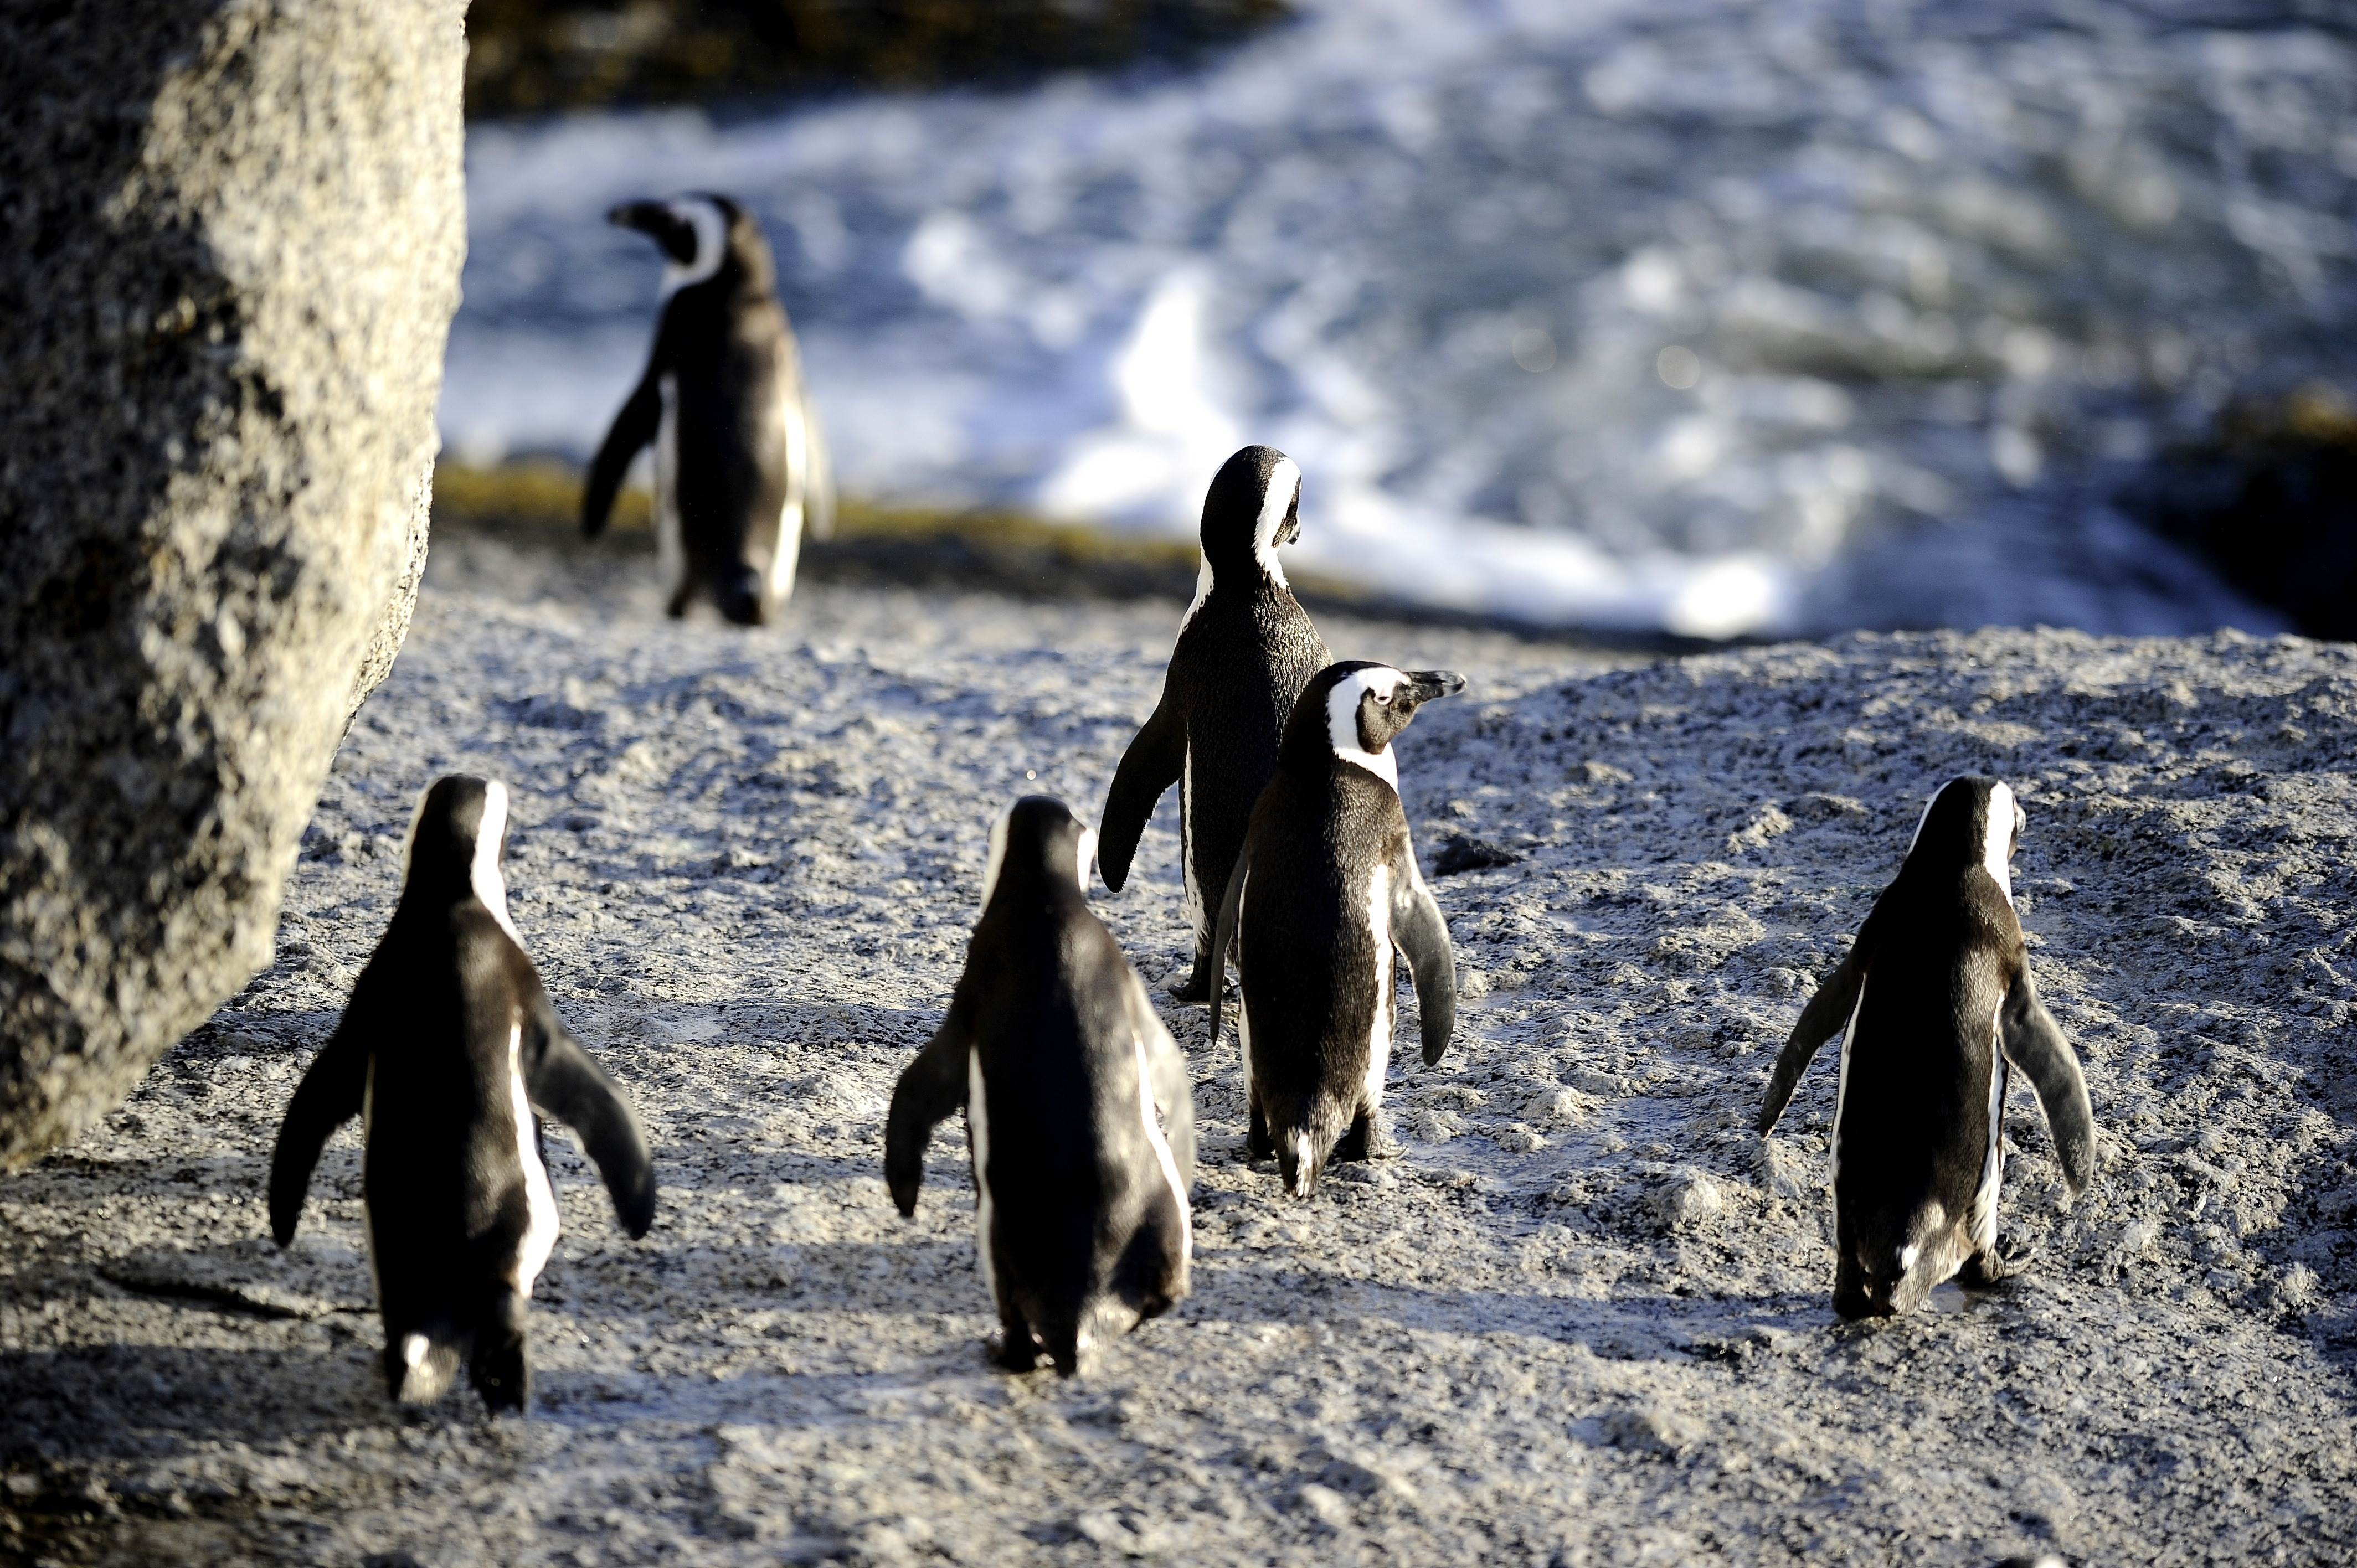 In this March 16, 2011 file photo, African penguins are pictured in Simon's Town near Cape Town, South Africa. Photo: AFP